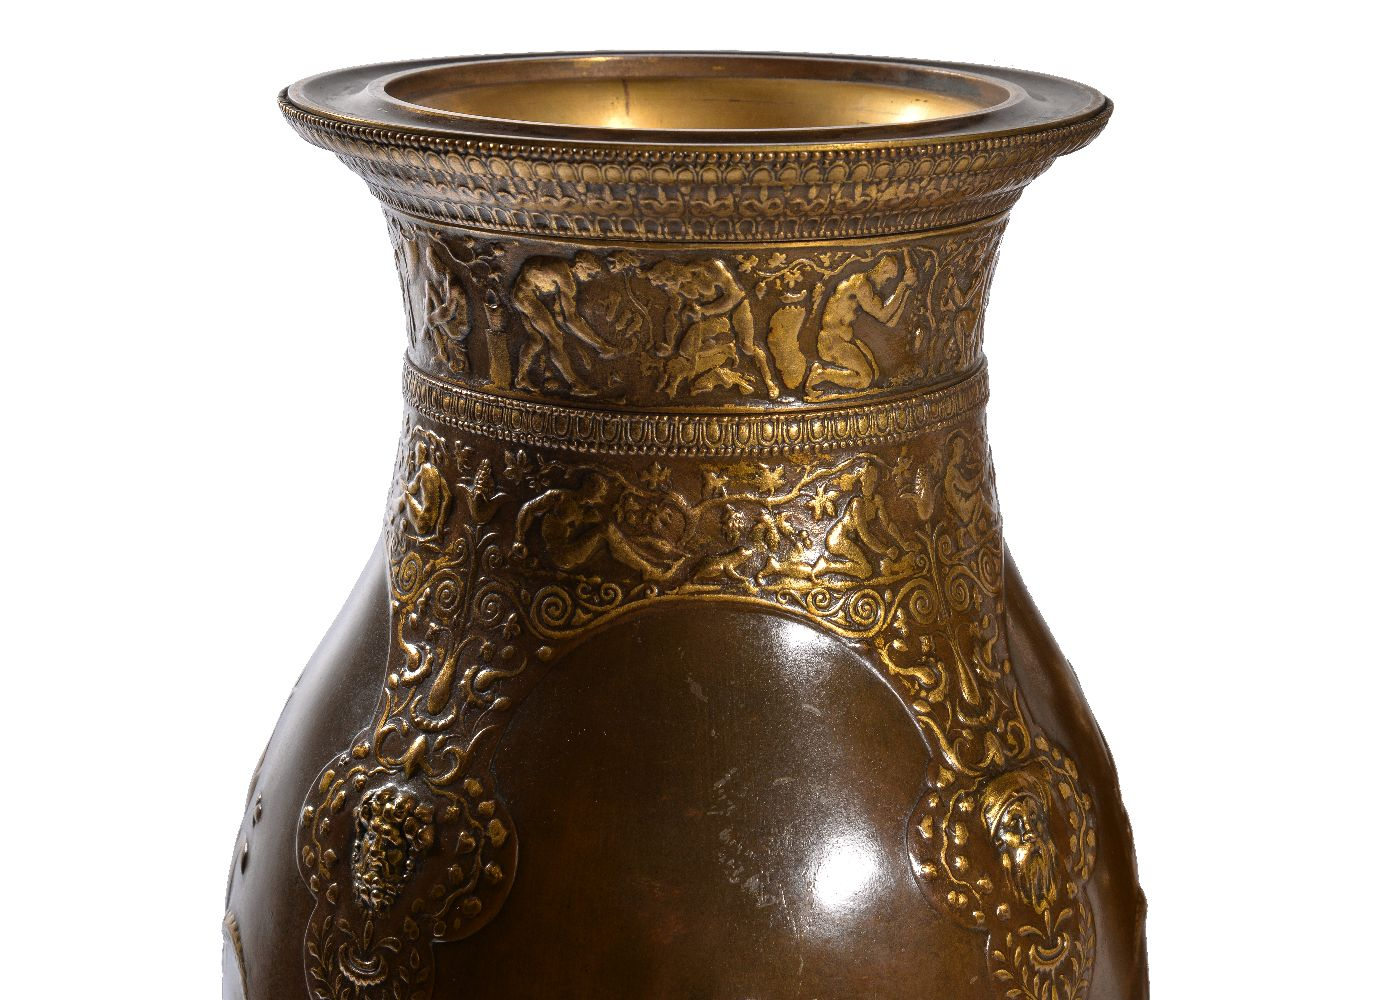 Lot 96 - ‡ A pair of parcel gilt & patinated bronze vases in the Neo-Grec taste by Ferdinand Barbedienne and